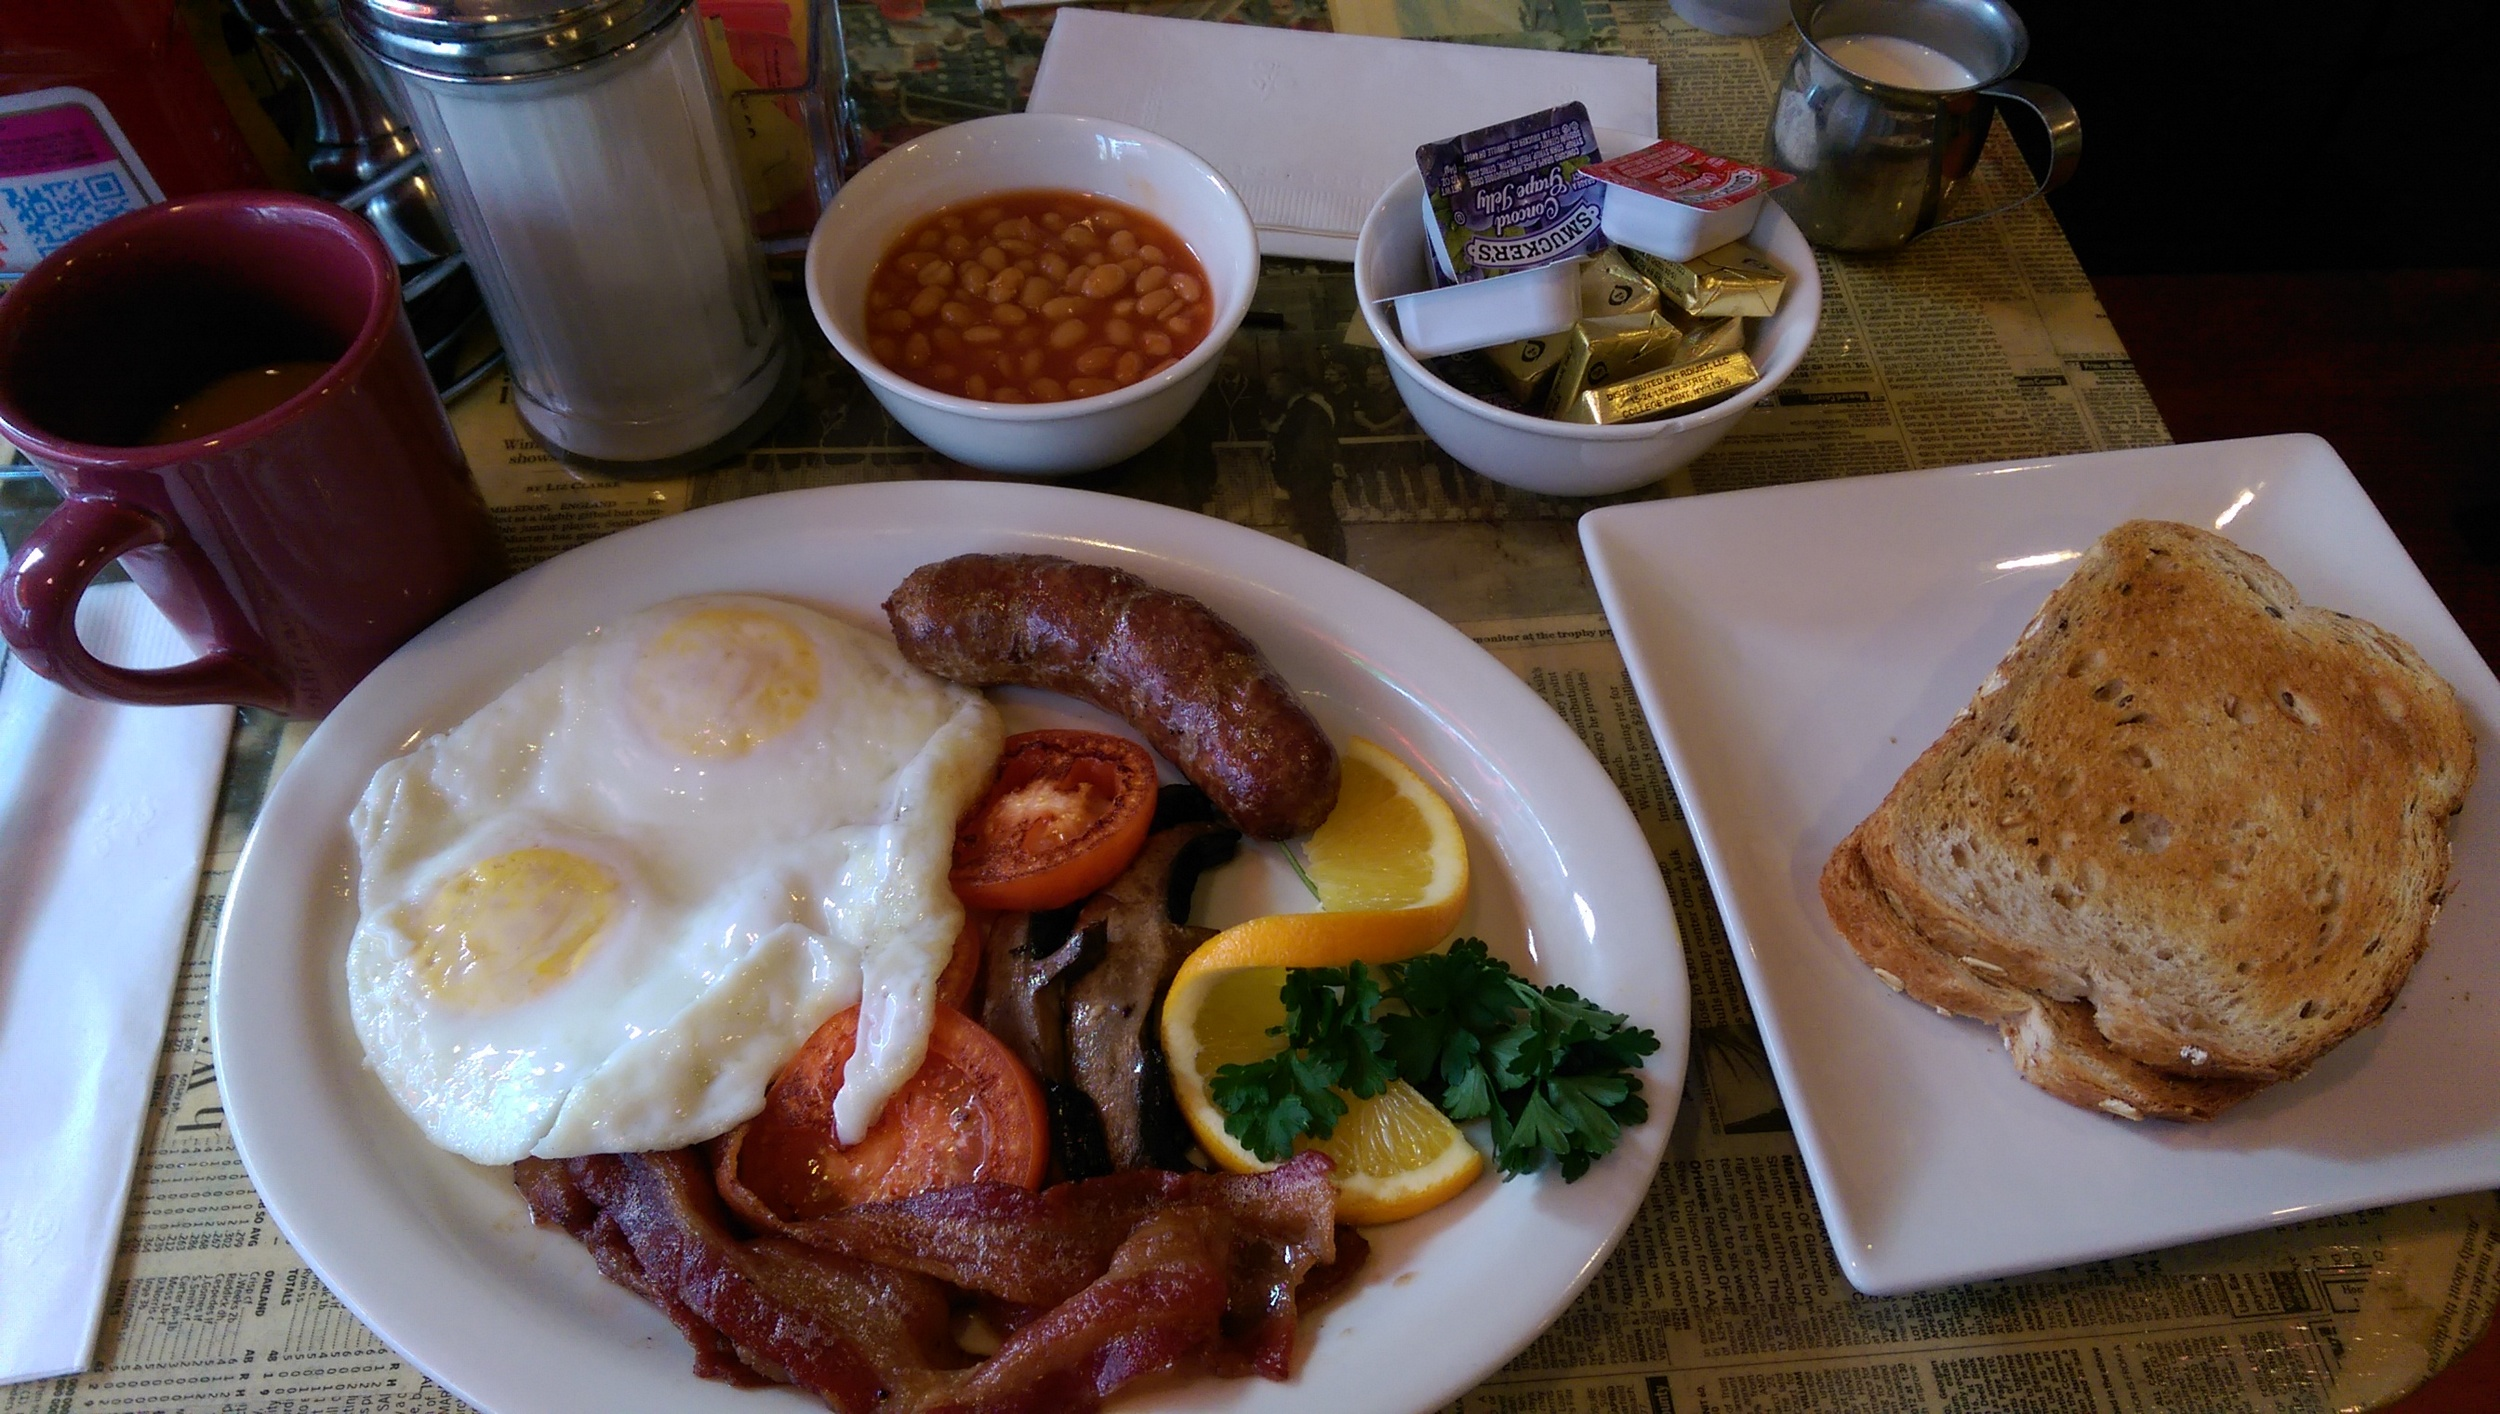 A proper English breakfast